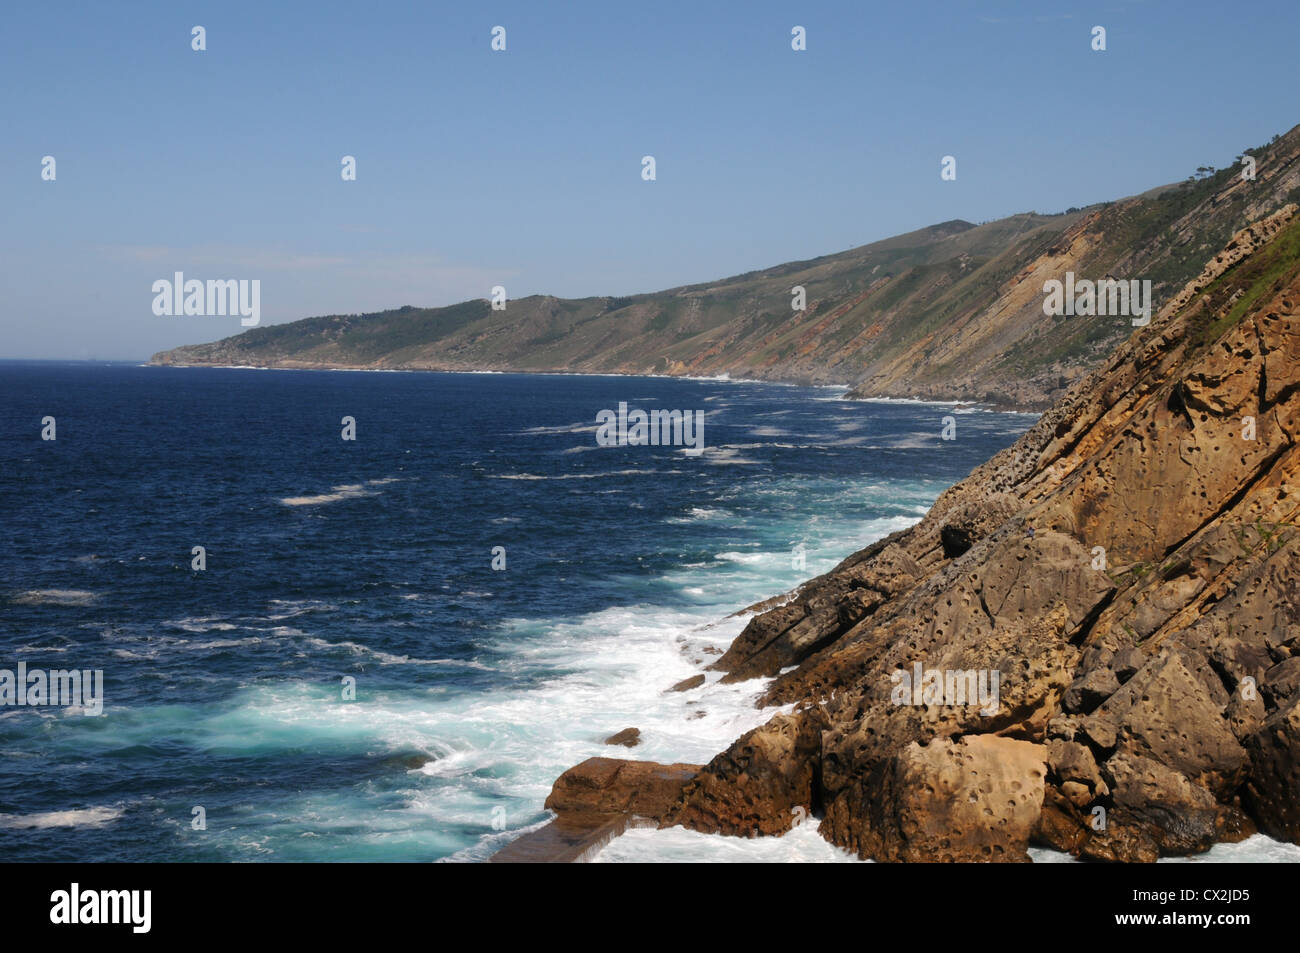 Coastline by the entrance to the port of the north Spanish town of Pasajes - Stock Image